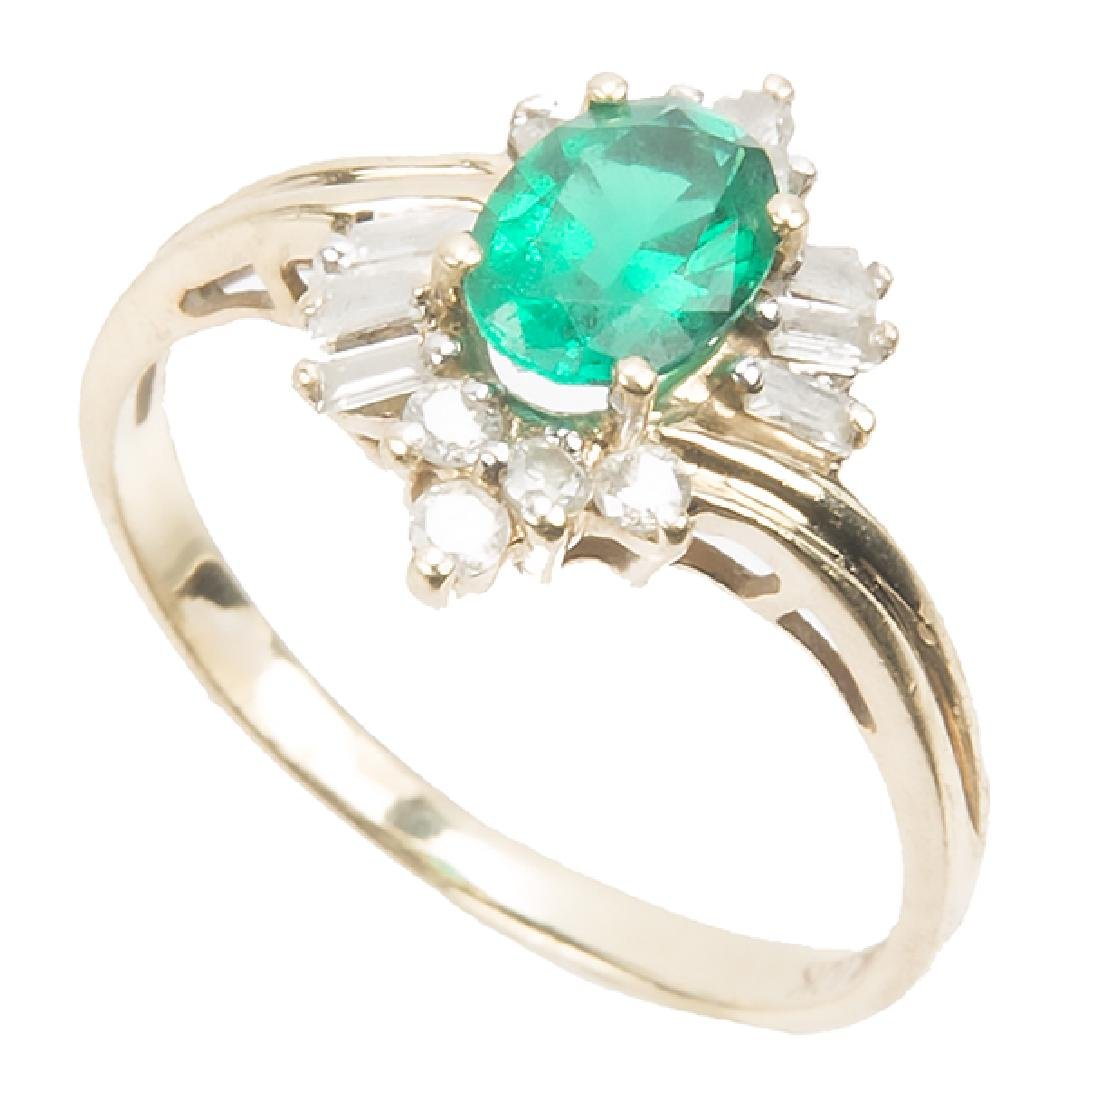 LADIES 10K YELLOW GOLD DIAMOND EMERALD RING - 2